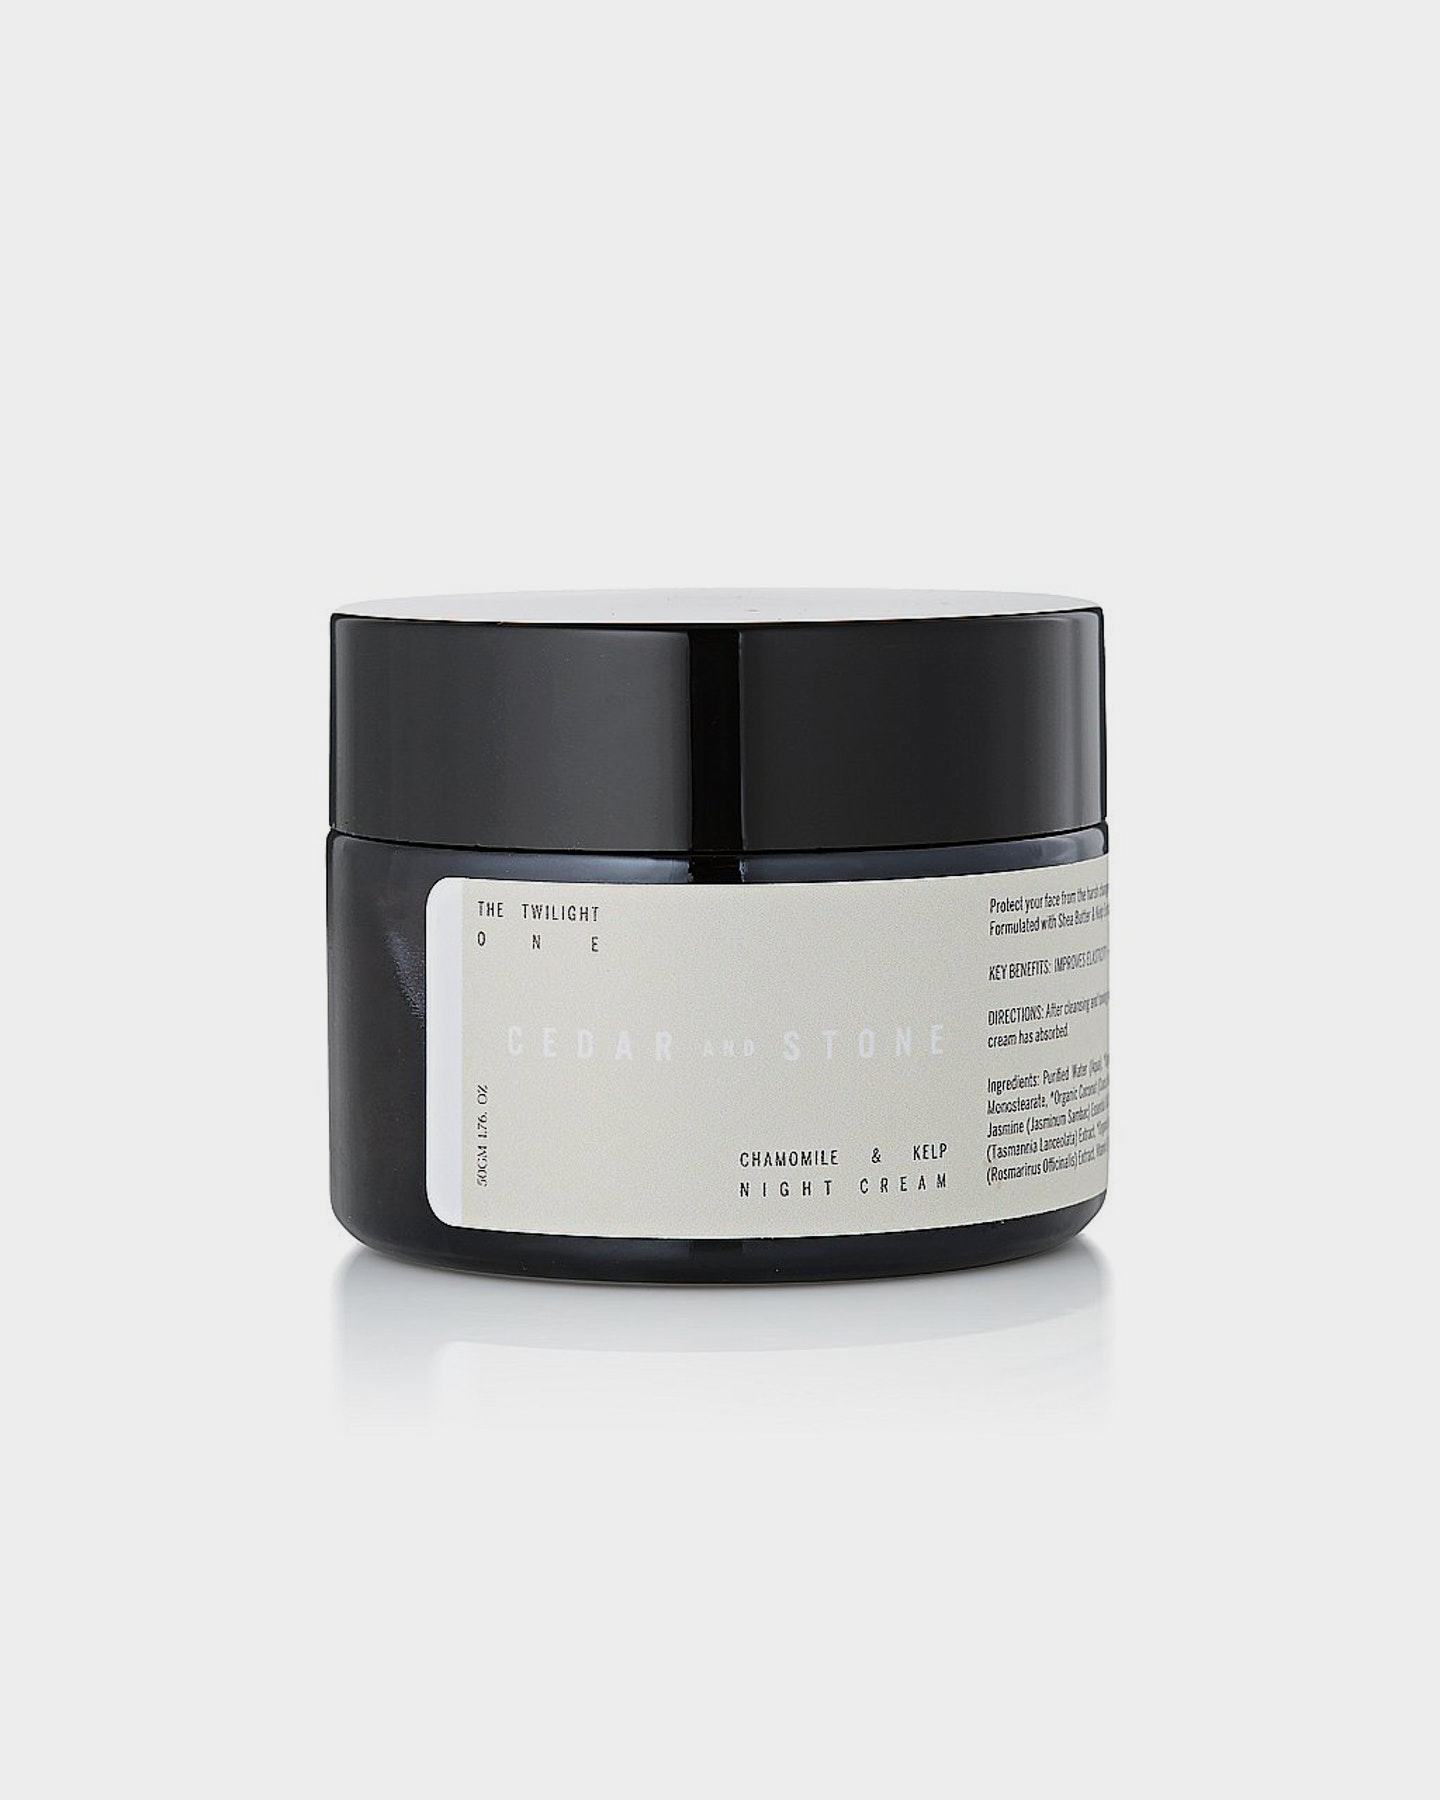 Cedar And Stone The Twilight One Chamomile And Kelp Night Cream Natural